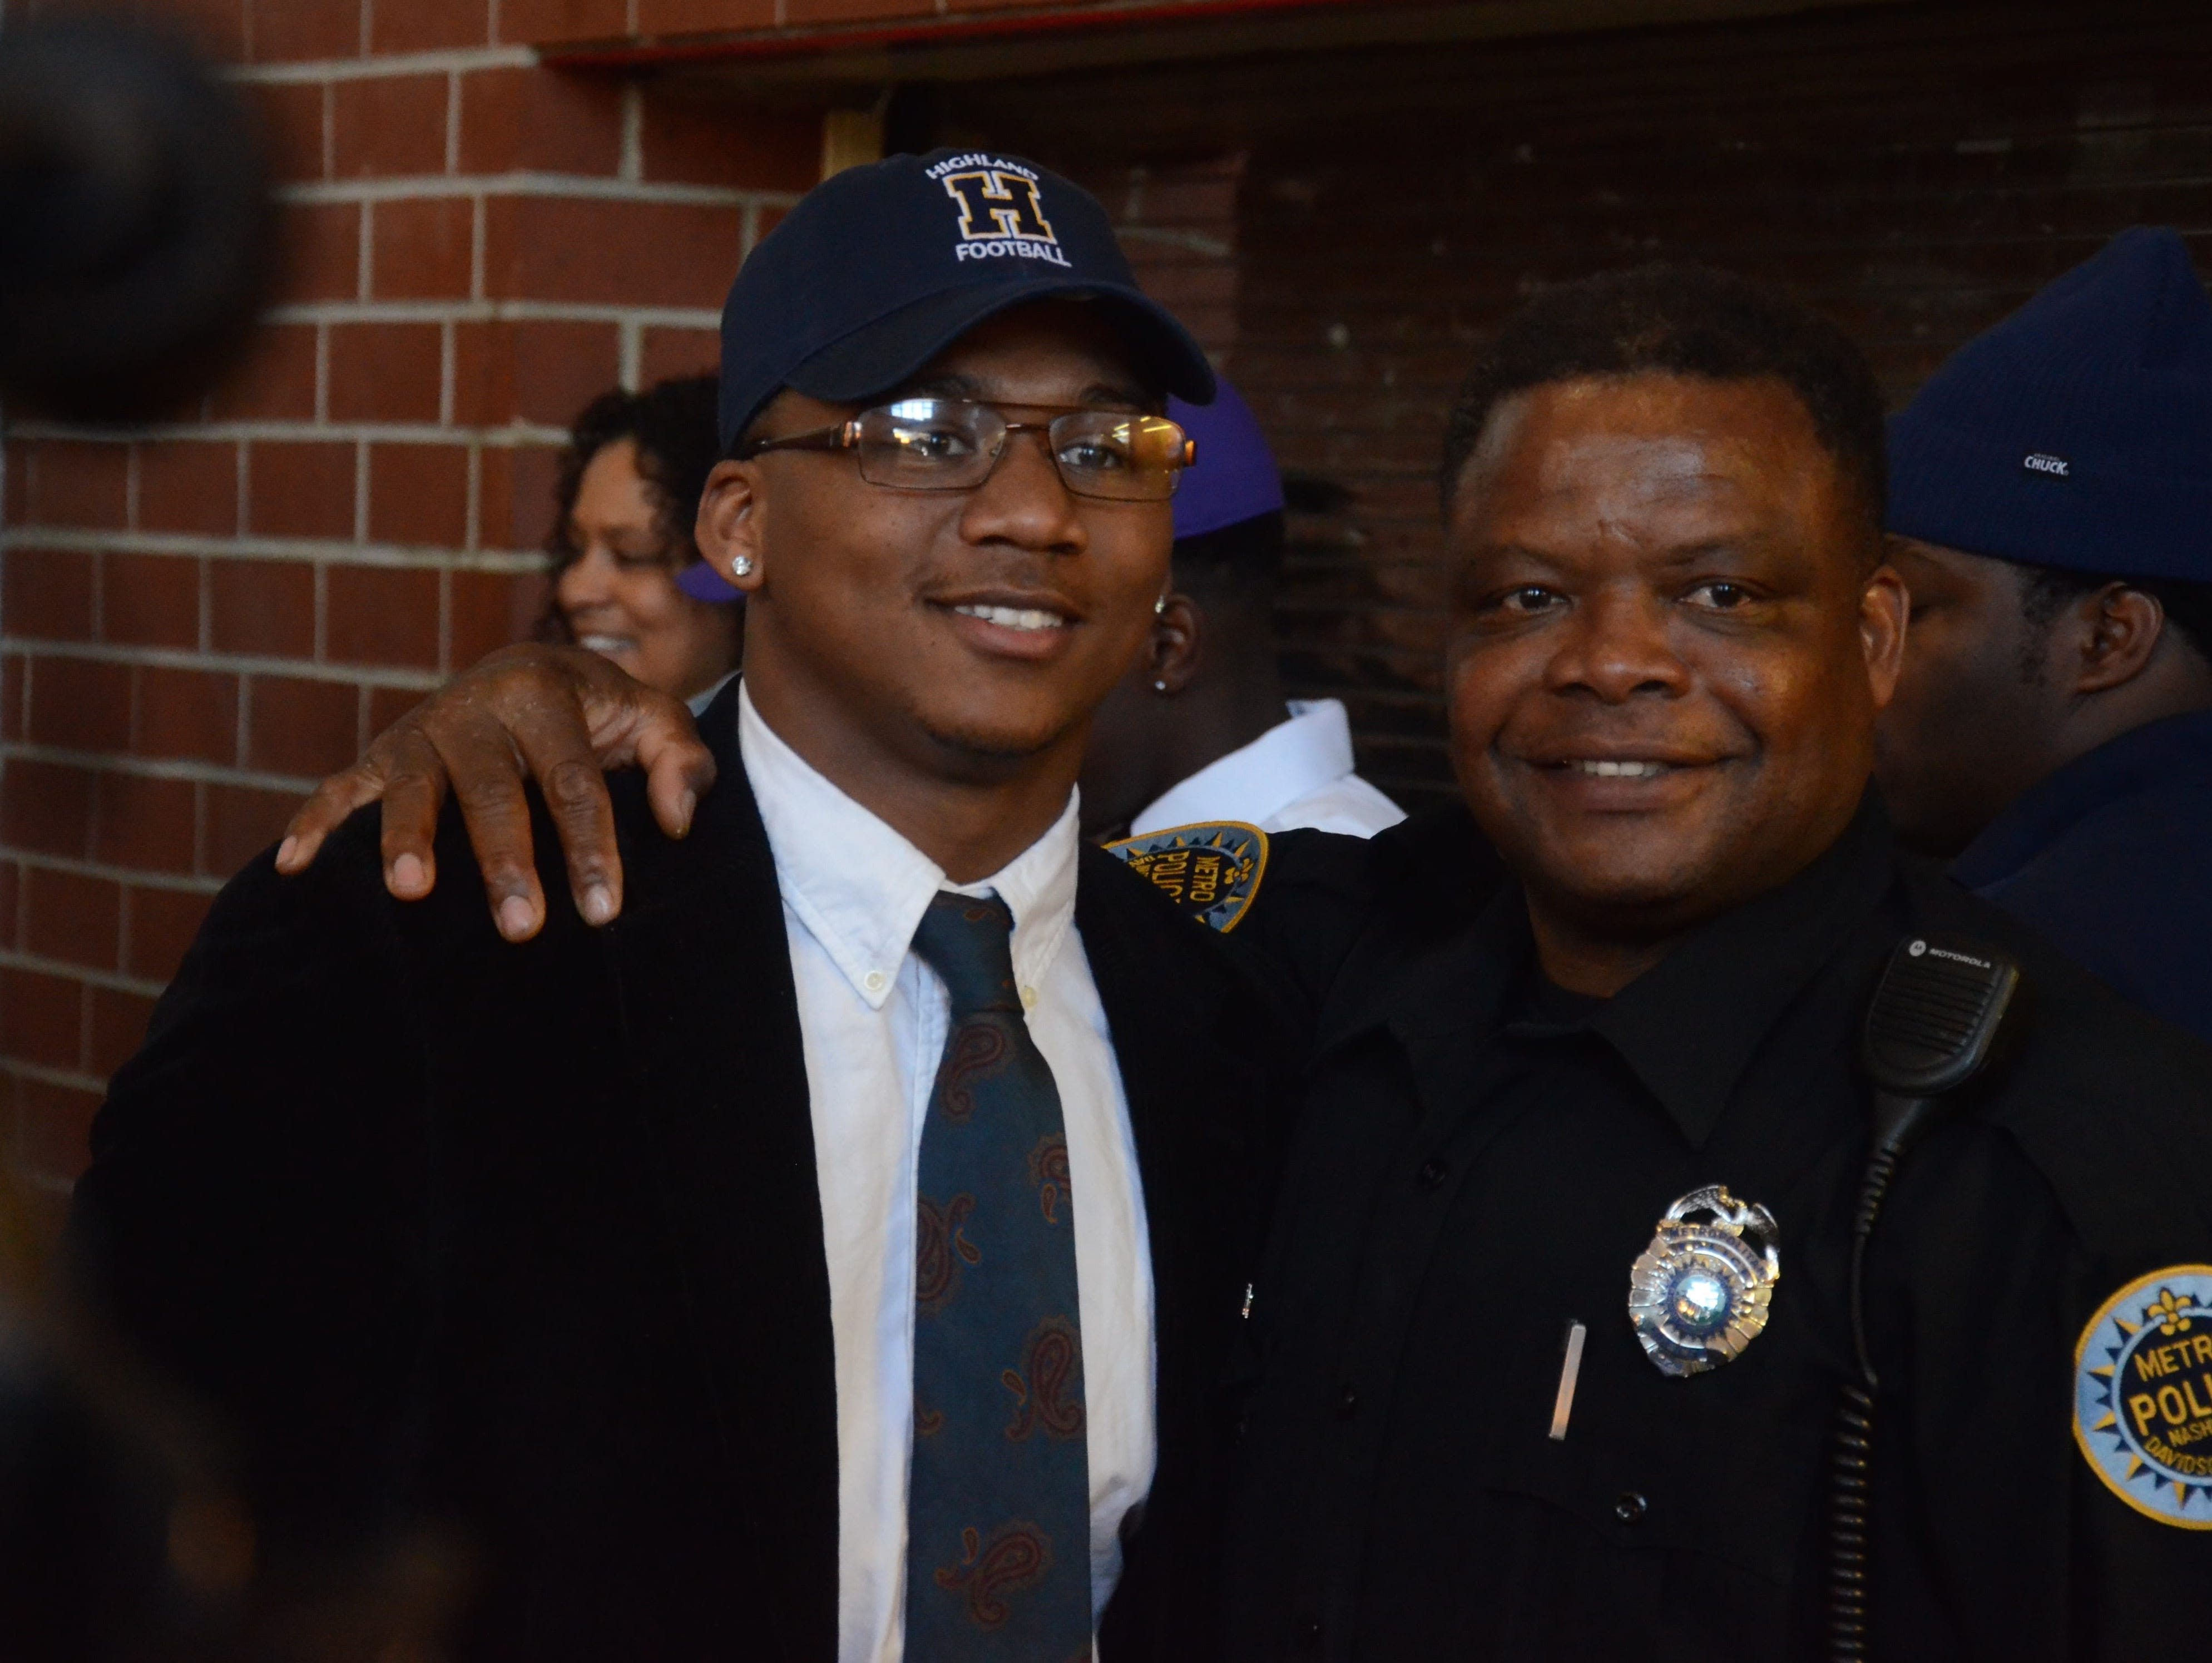 Pearl-Cohn senior A.J. Morris (left) poses for a photograph with one of his mentors, officer Paul Flournoy, after signing a letter of intent to play football at Highland Community College.